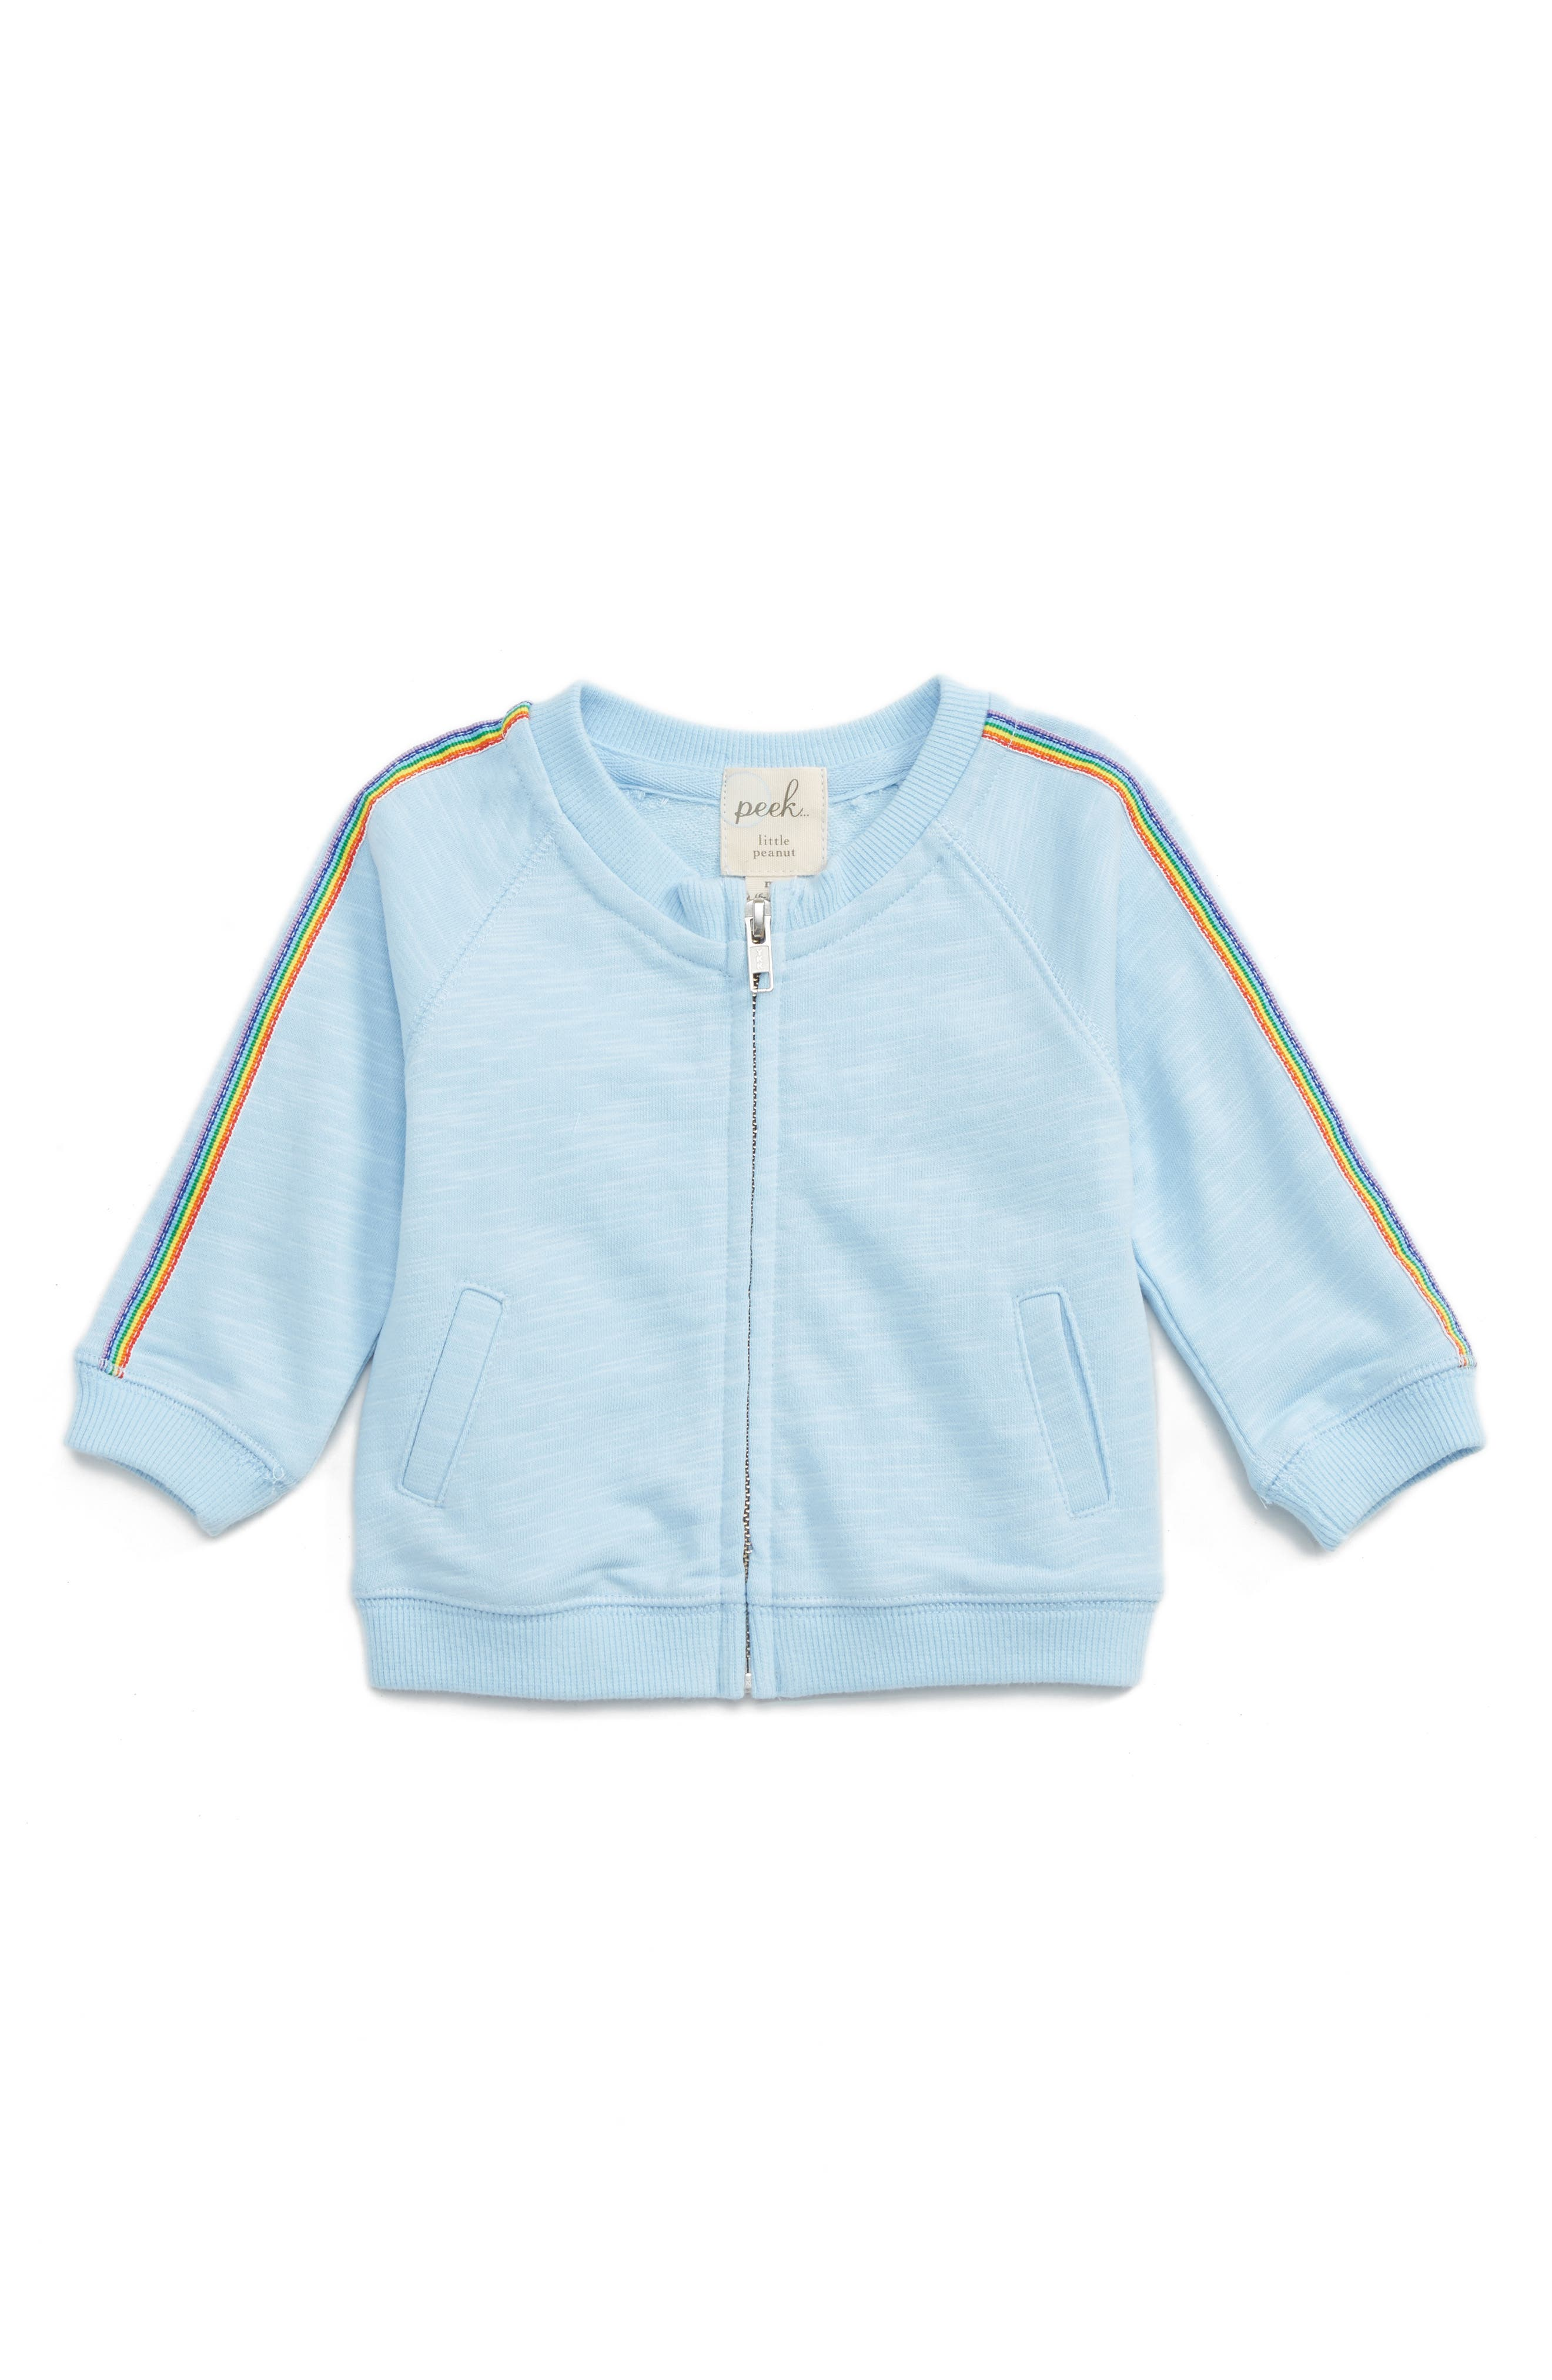 Peek Rainbow Trim Track Jacket (Baby Girls)